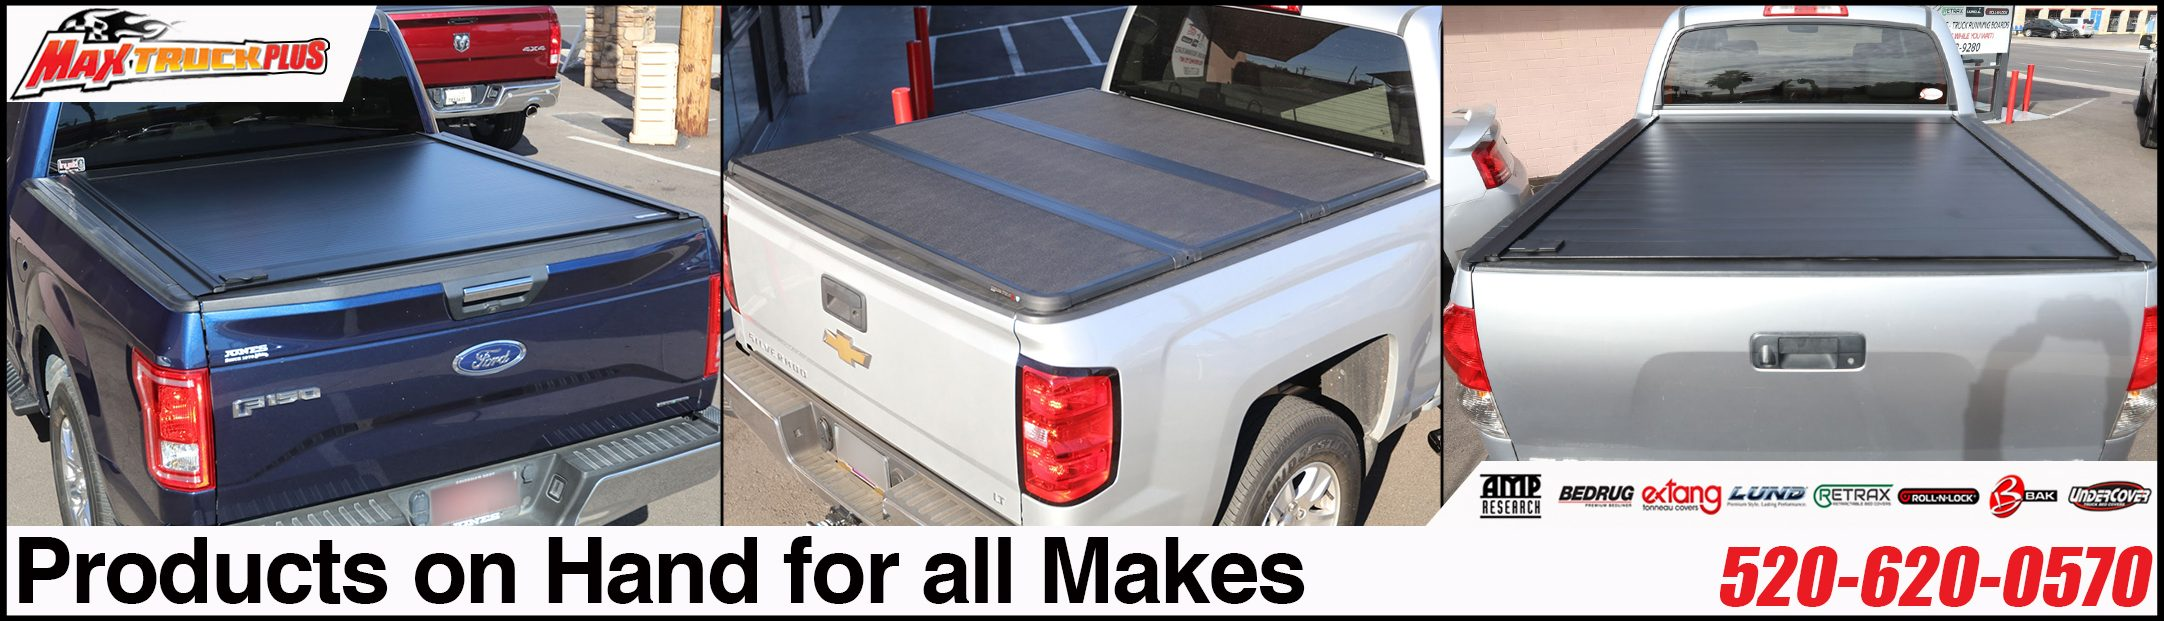 Truck Covers In Tucson Arizona